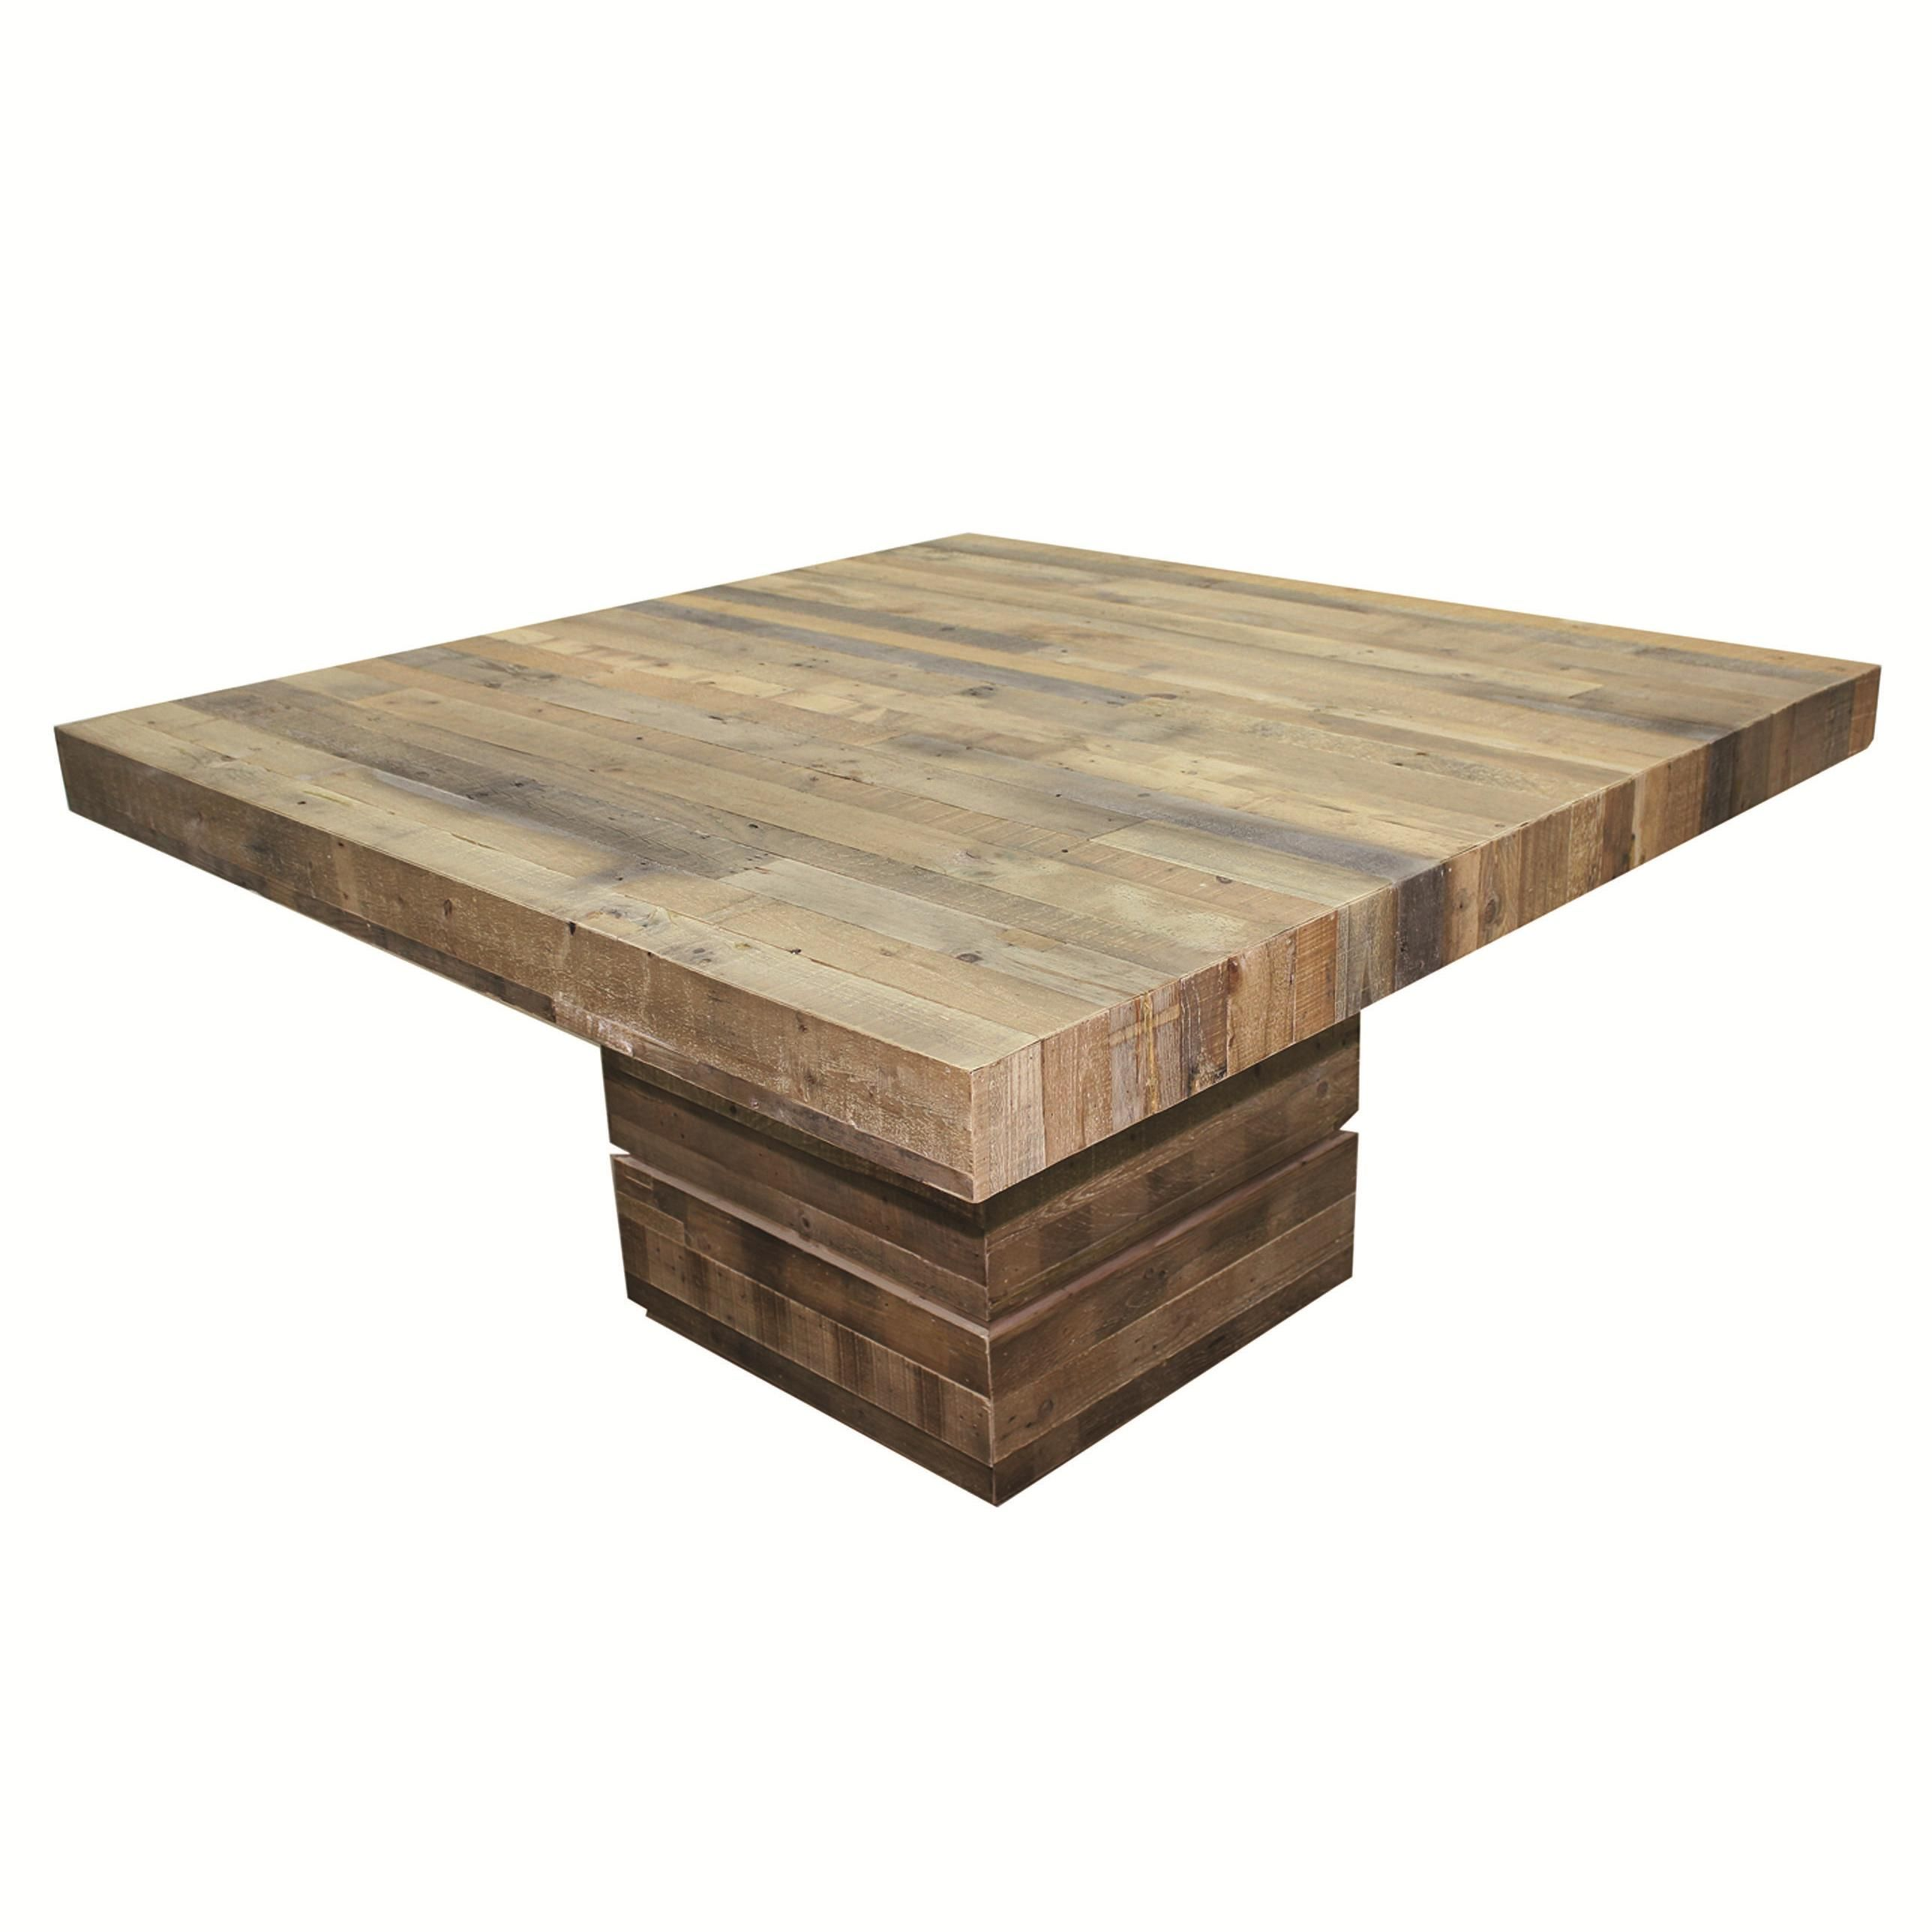 Sierra Tahoe Square Dining Table By Four Hands   Reeds Furniture   Dining  Room Table Los Angeles, Thousand Oaks, Simi Valley, Agoura Hills, Woodland  Hills